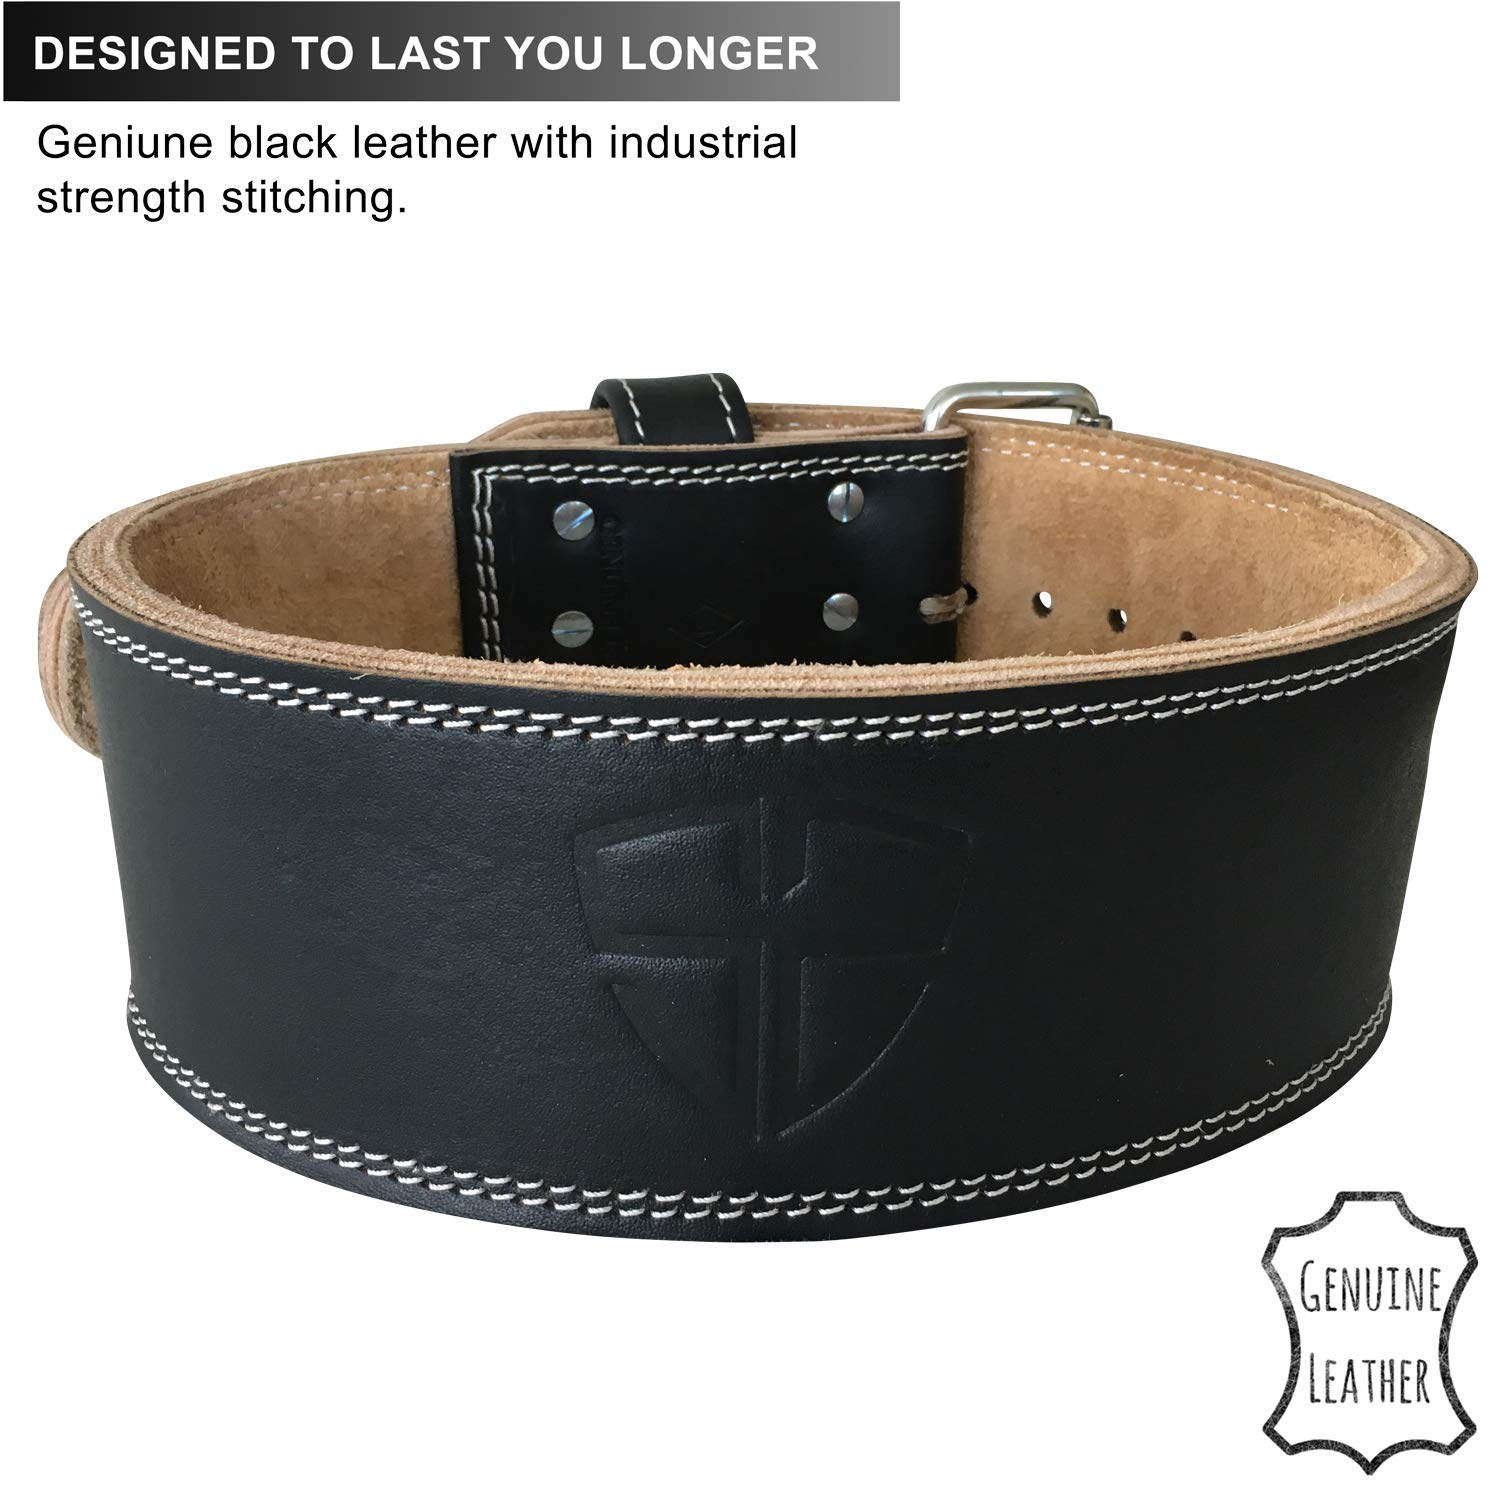 Steel Sweat Weight Lifting Belt - 4 Inches Wide by 10mm - Single Prong Powerlifting Belt That's Heavy Duty - Genuine Cowhide Leather - X-Large Texus by Steel Sweat (Image #6)